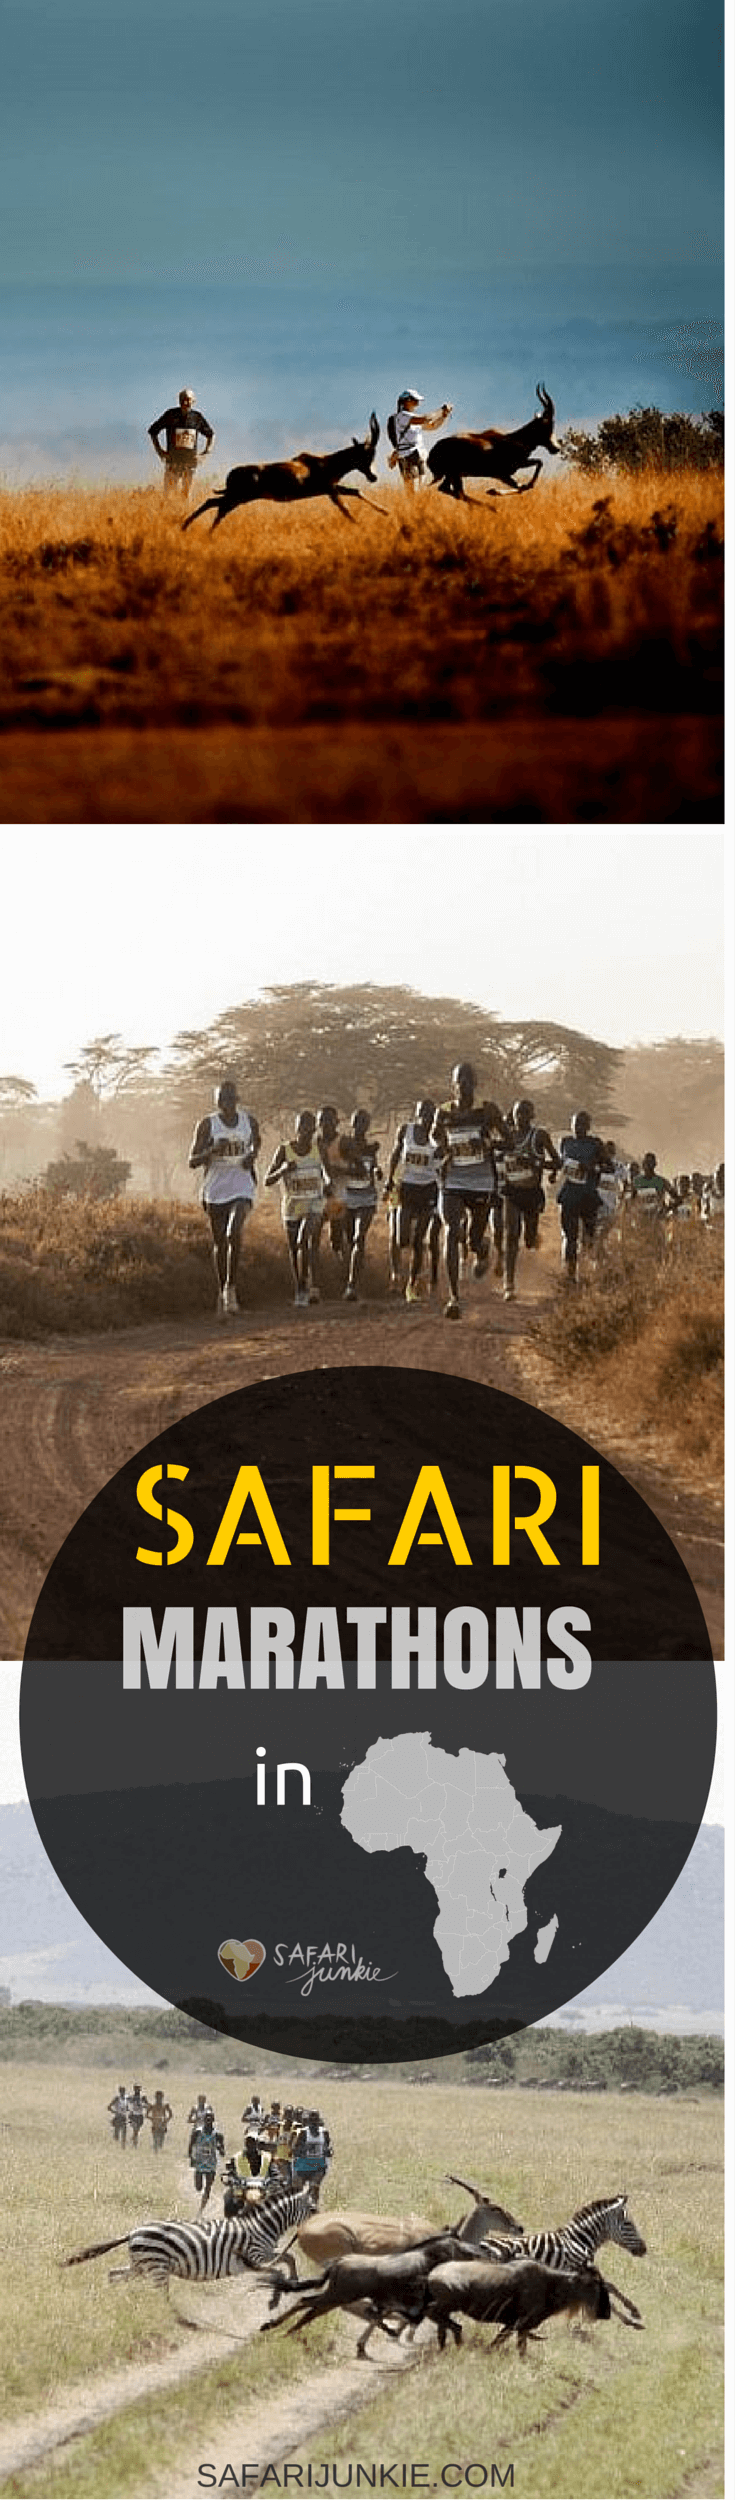 SAFARI marathons africa